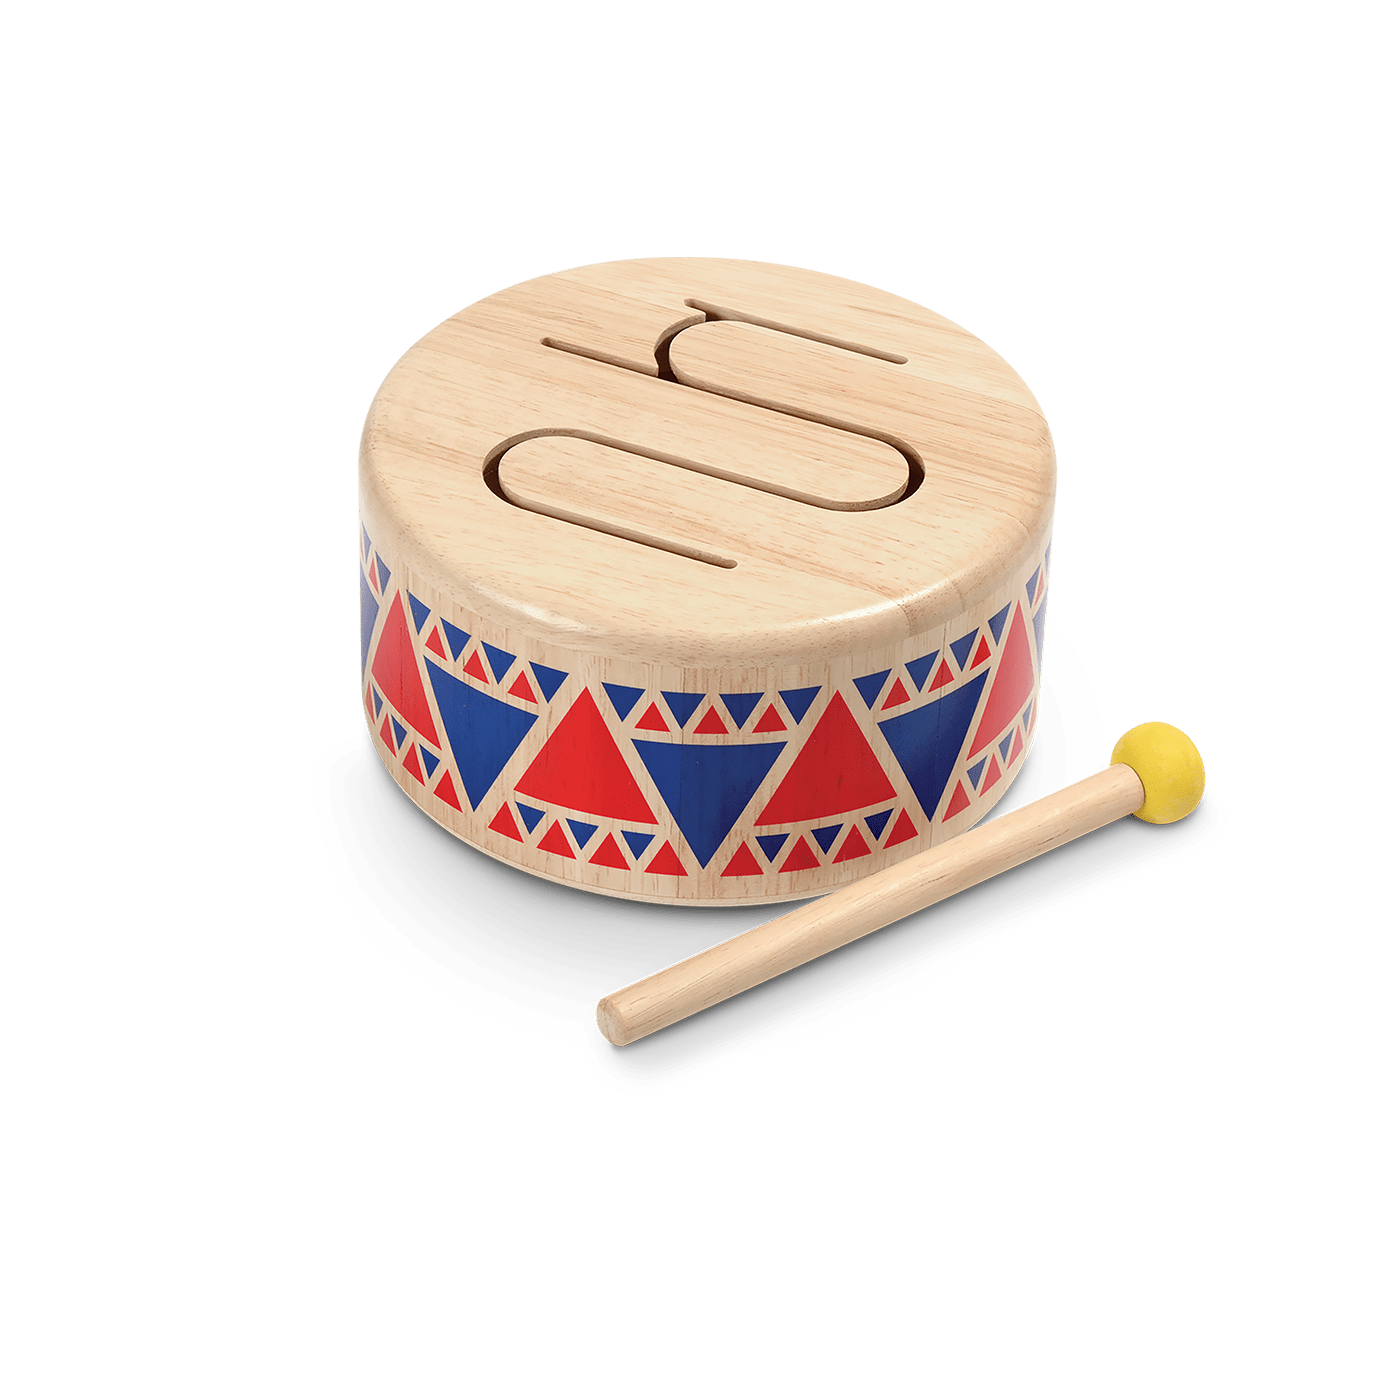 6404_PlanToys_SOLID_DRUM_Music_Musical_Auditory_Coordination_Fine_Motor_18m_Wooden_toys_Education_toys_Safety_Toys_Non-toxic_0.png